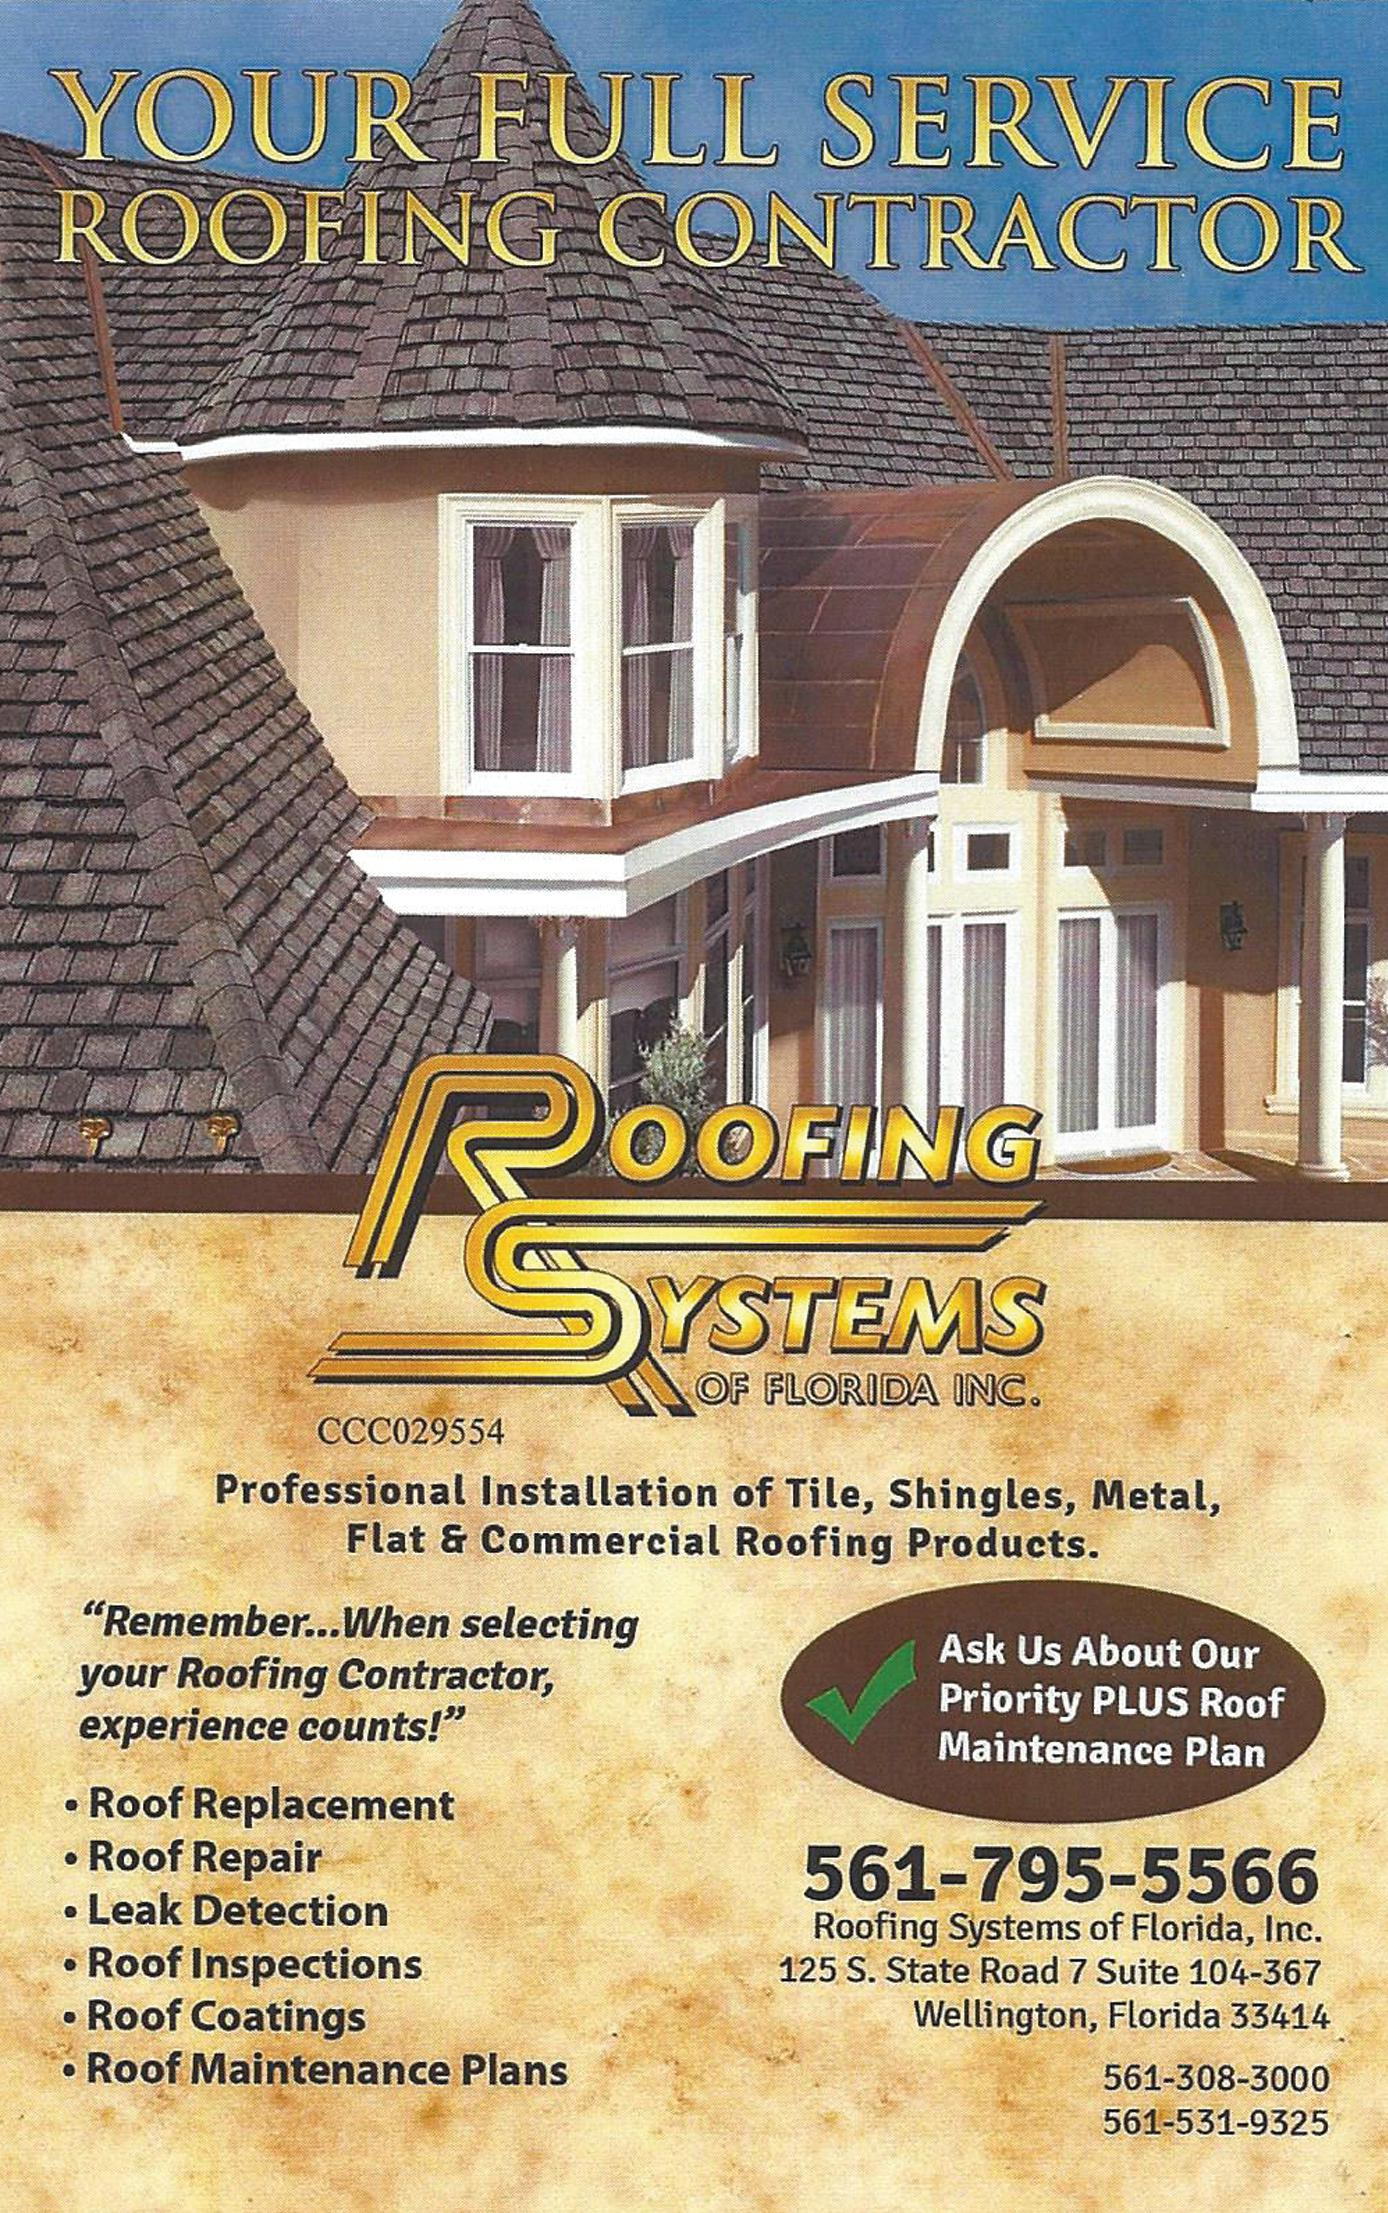 Roofing Systems of Florida, Inc.